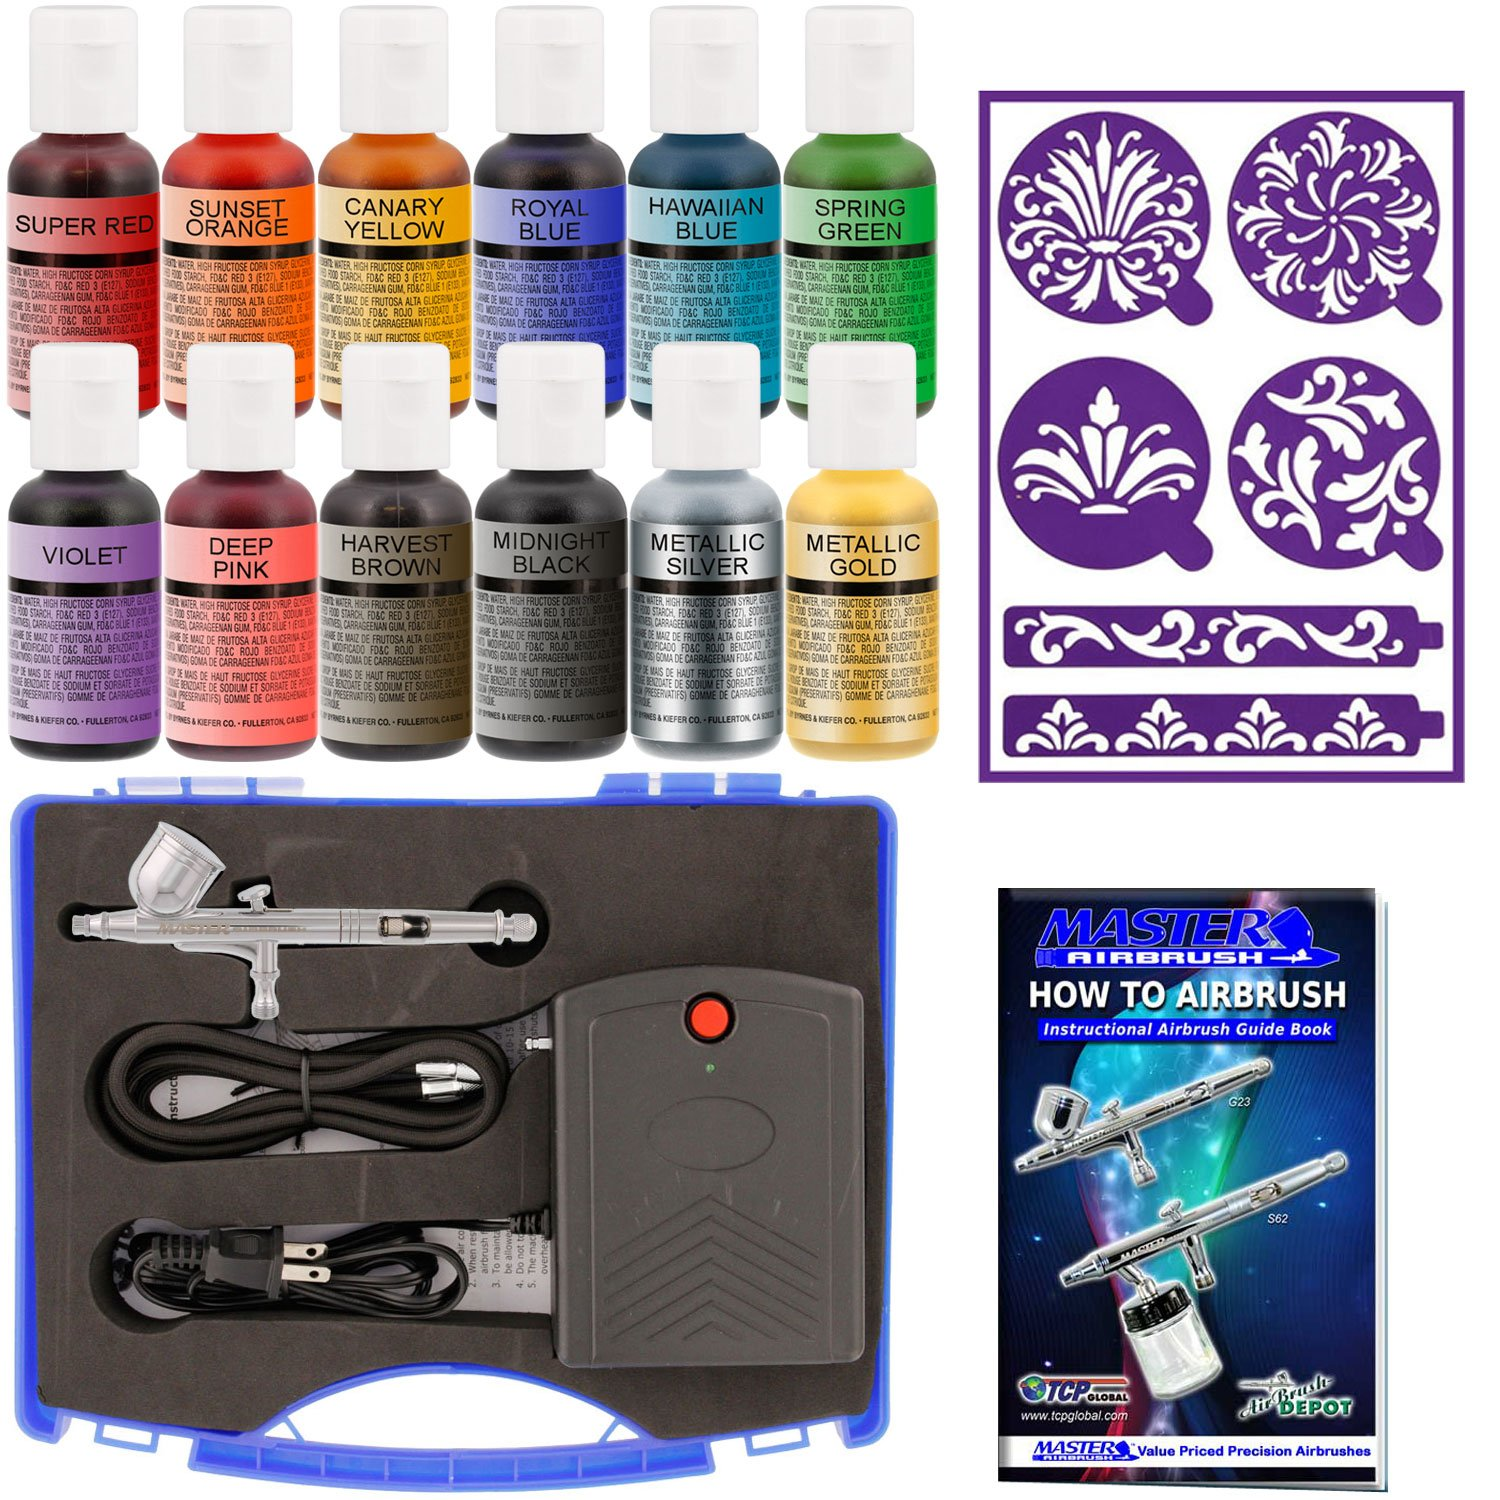 Cake Decorating Airbrush Kit with G23 Airbrush, Master Mini Compressor TC-22, Air Hose, Stick-N-Stay Stencils & 12 Color Chefmaster Food Coloring Set, .7 fl ounce Airbrush Depot KIT-SP11-22